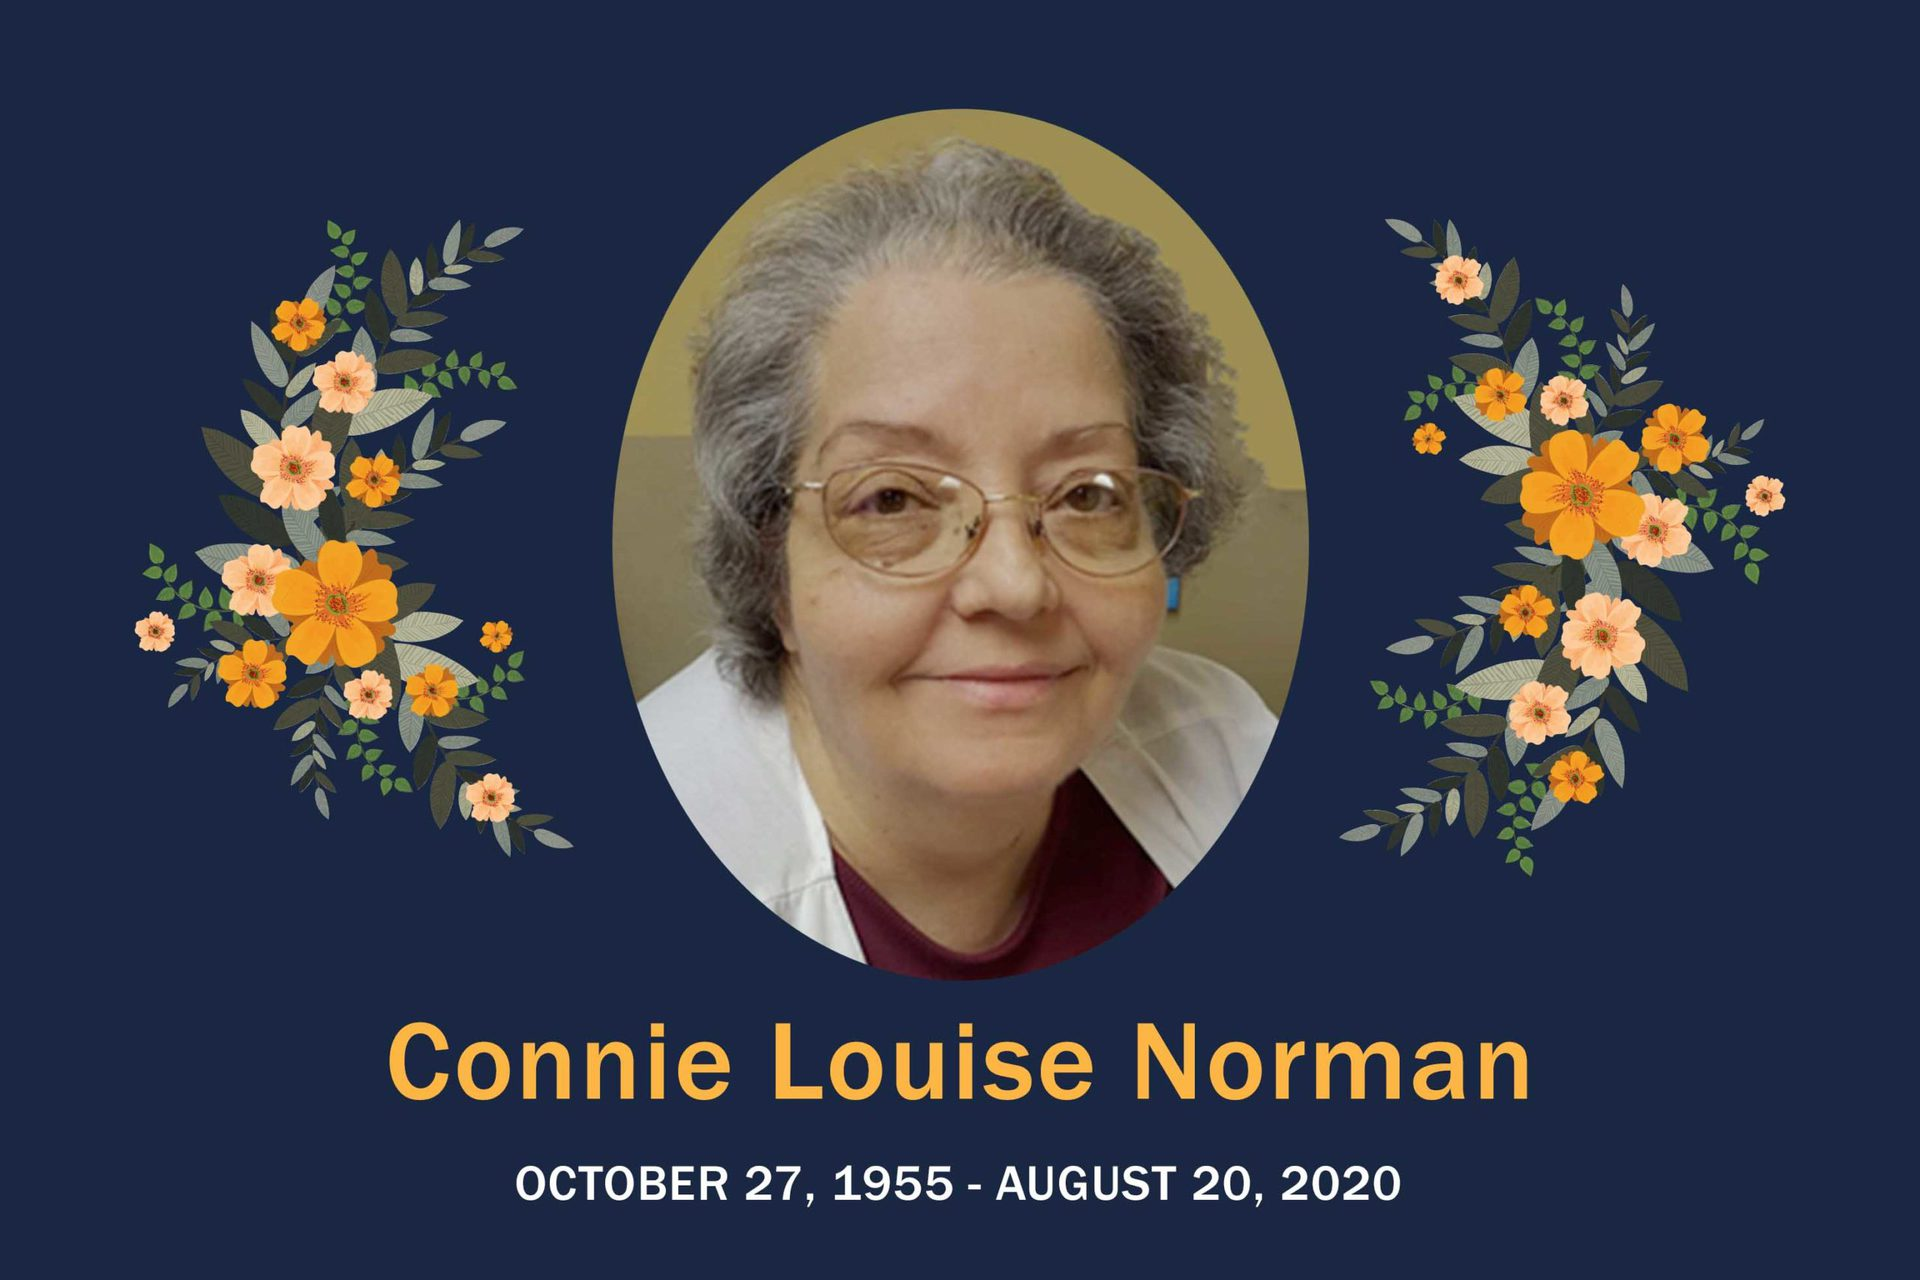 Connie Louise Norman